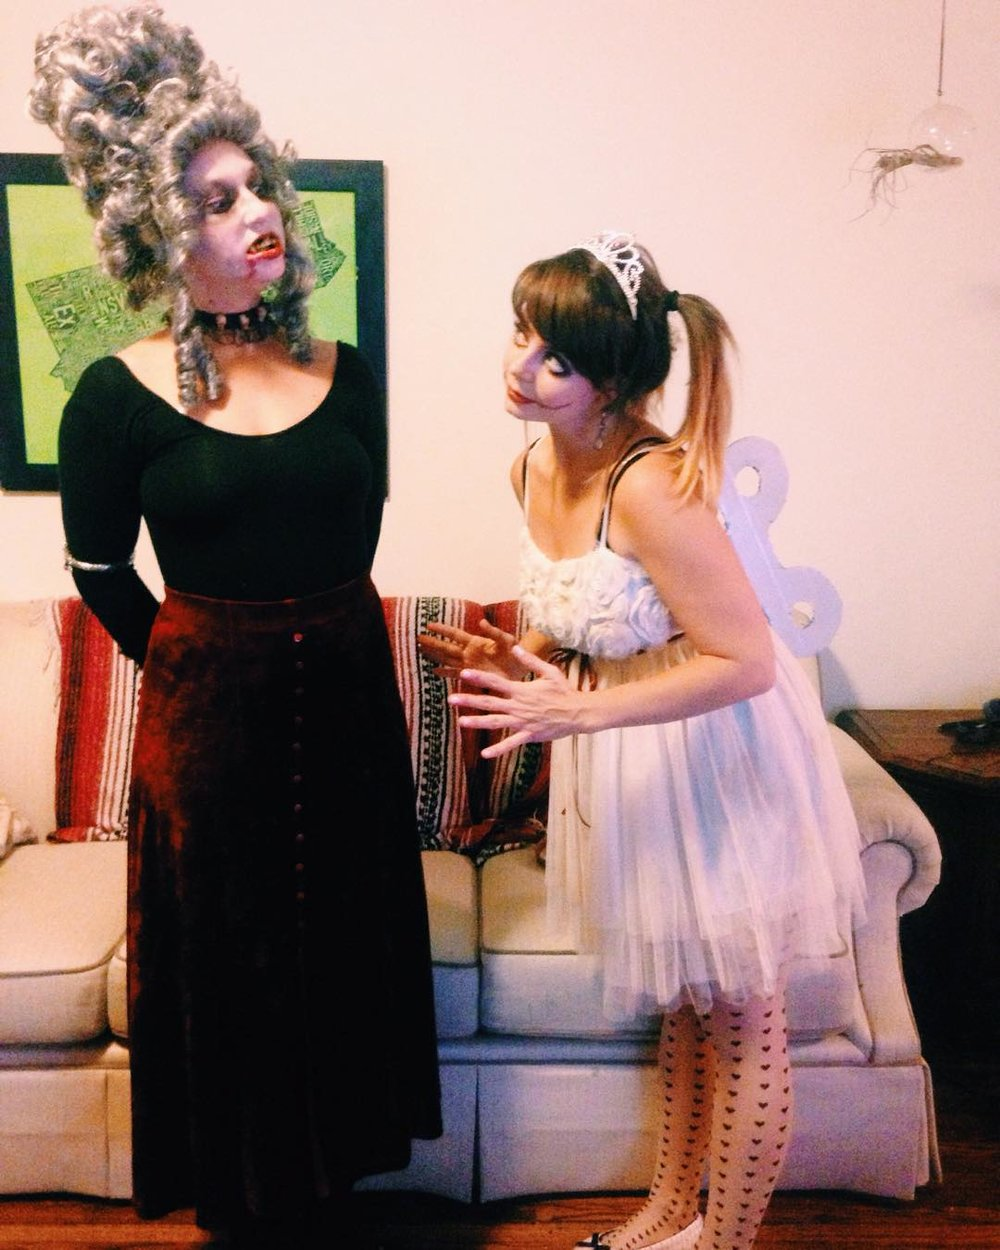 Vampiress (my bf Alex) + Wind Up Doll (me)